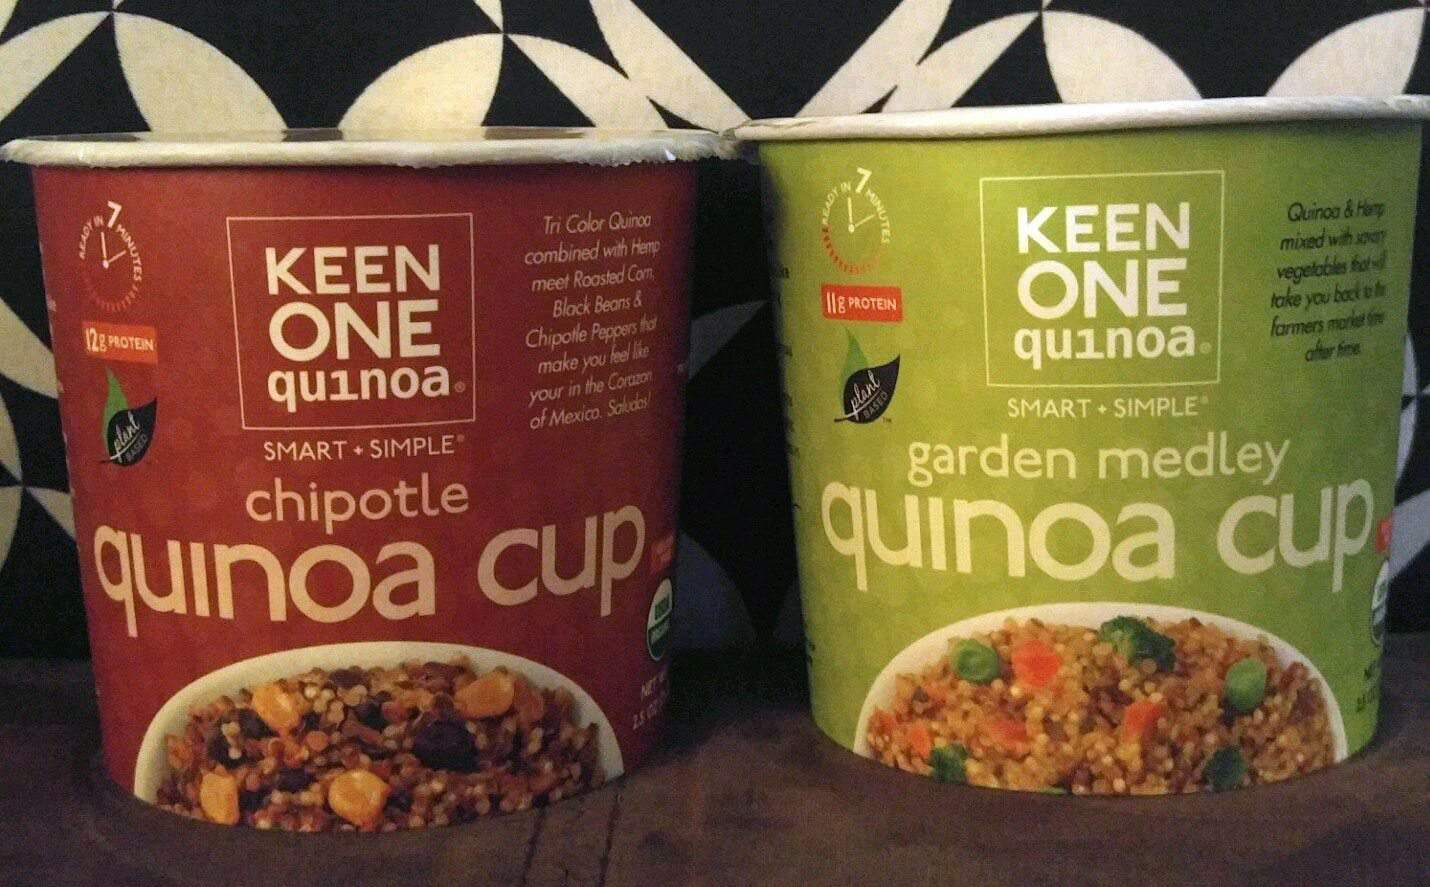 January 2017 Fit Snack Review - Keen One Quinoa